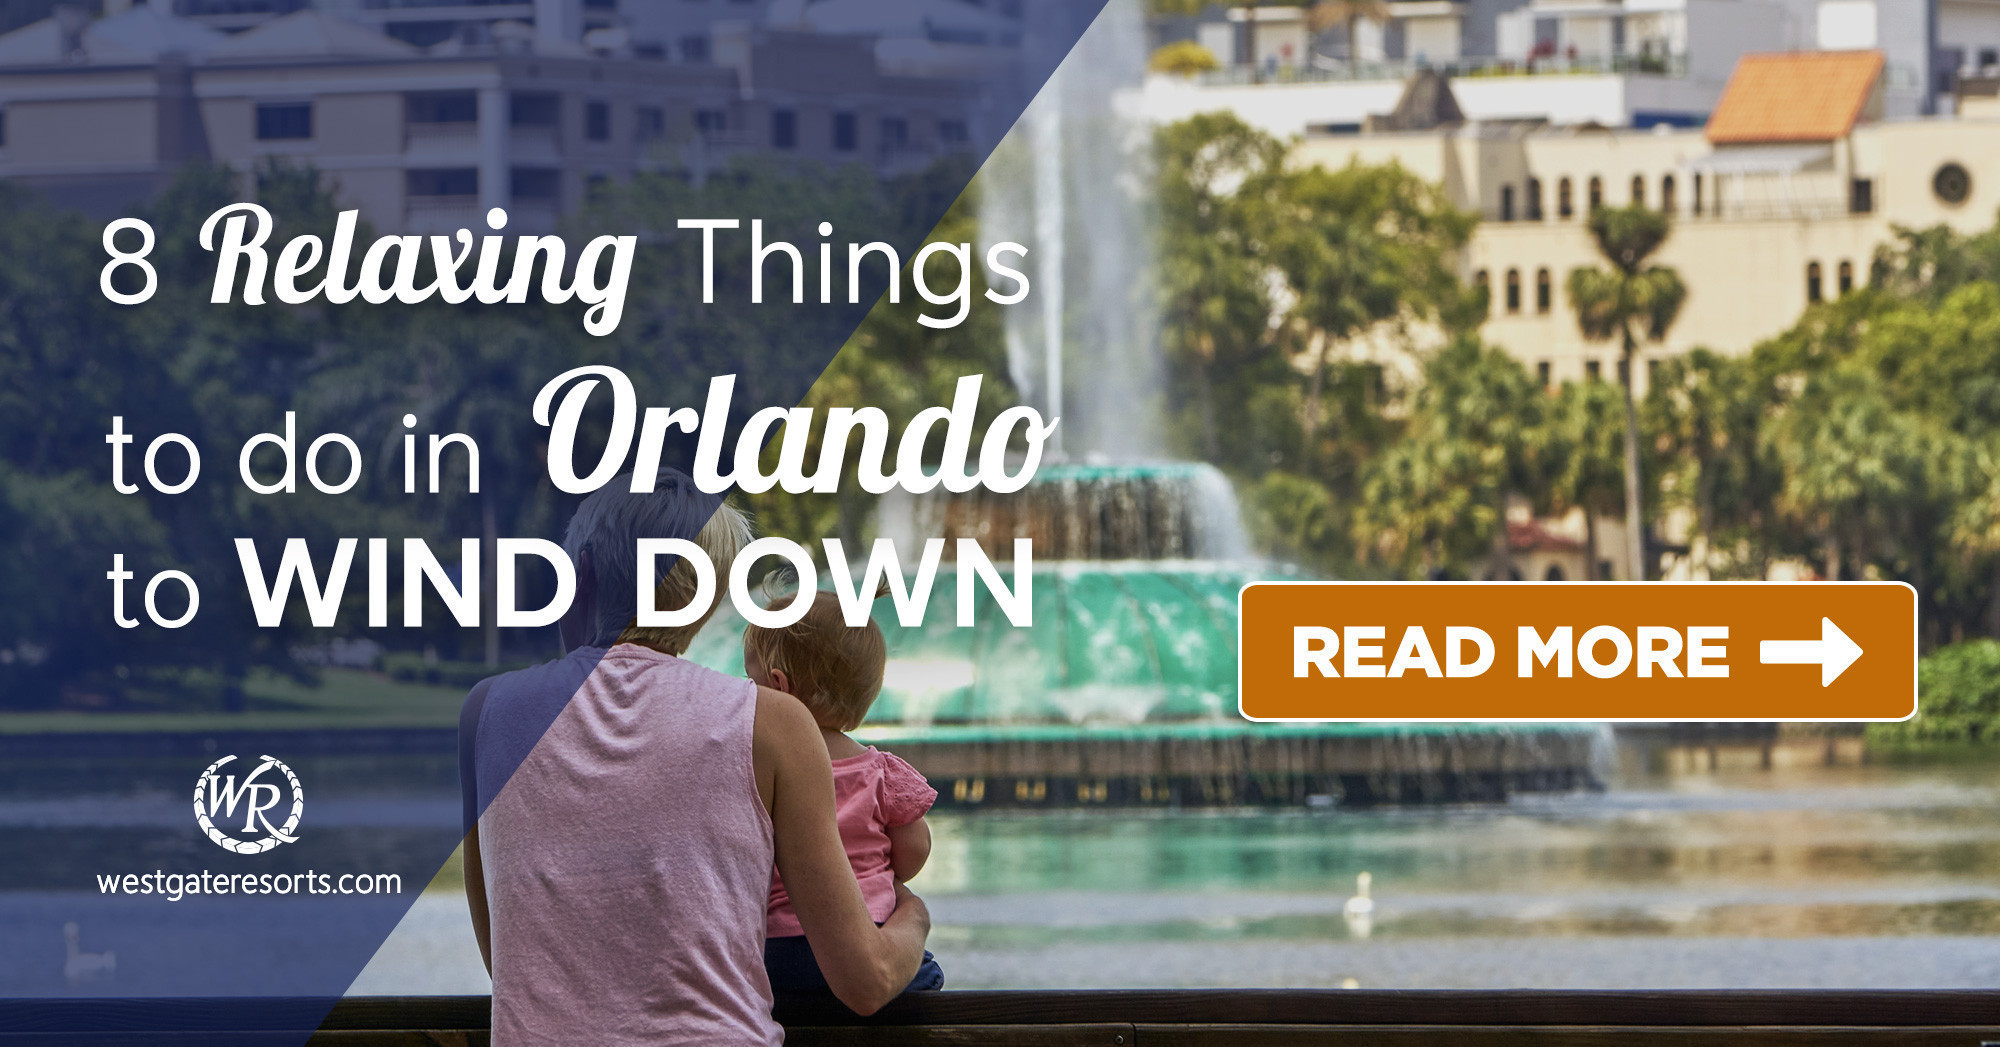 8 Relaxing Things to Do in Orlando to Wind Down | Westgate Resorts Travel Blog